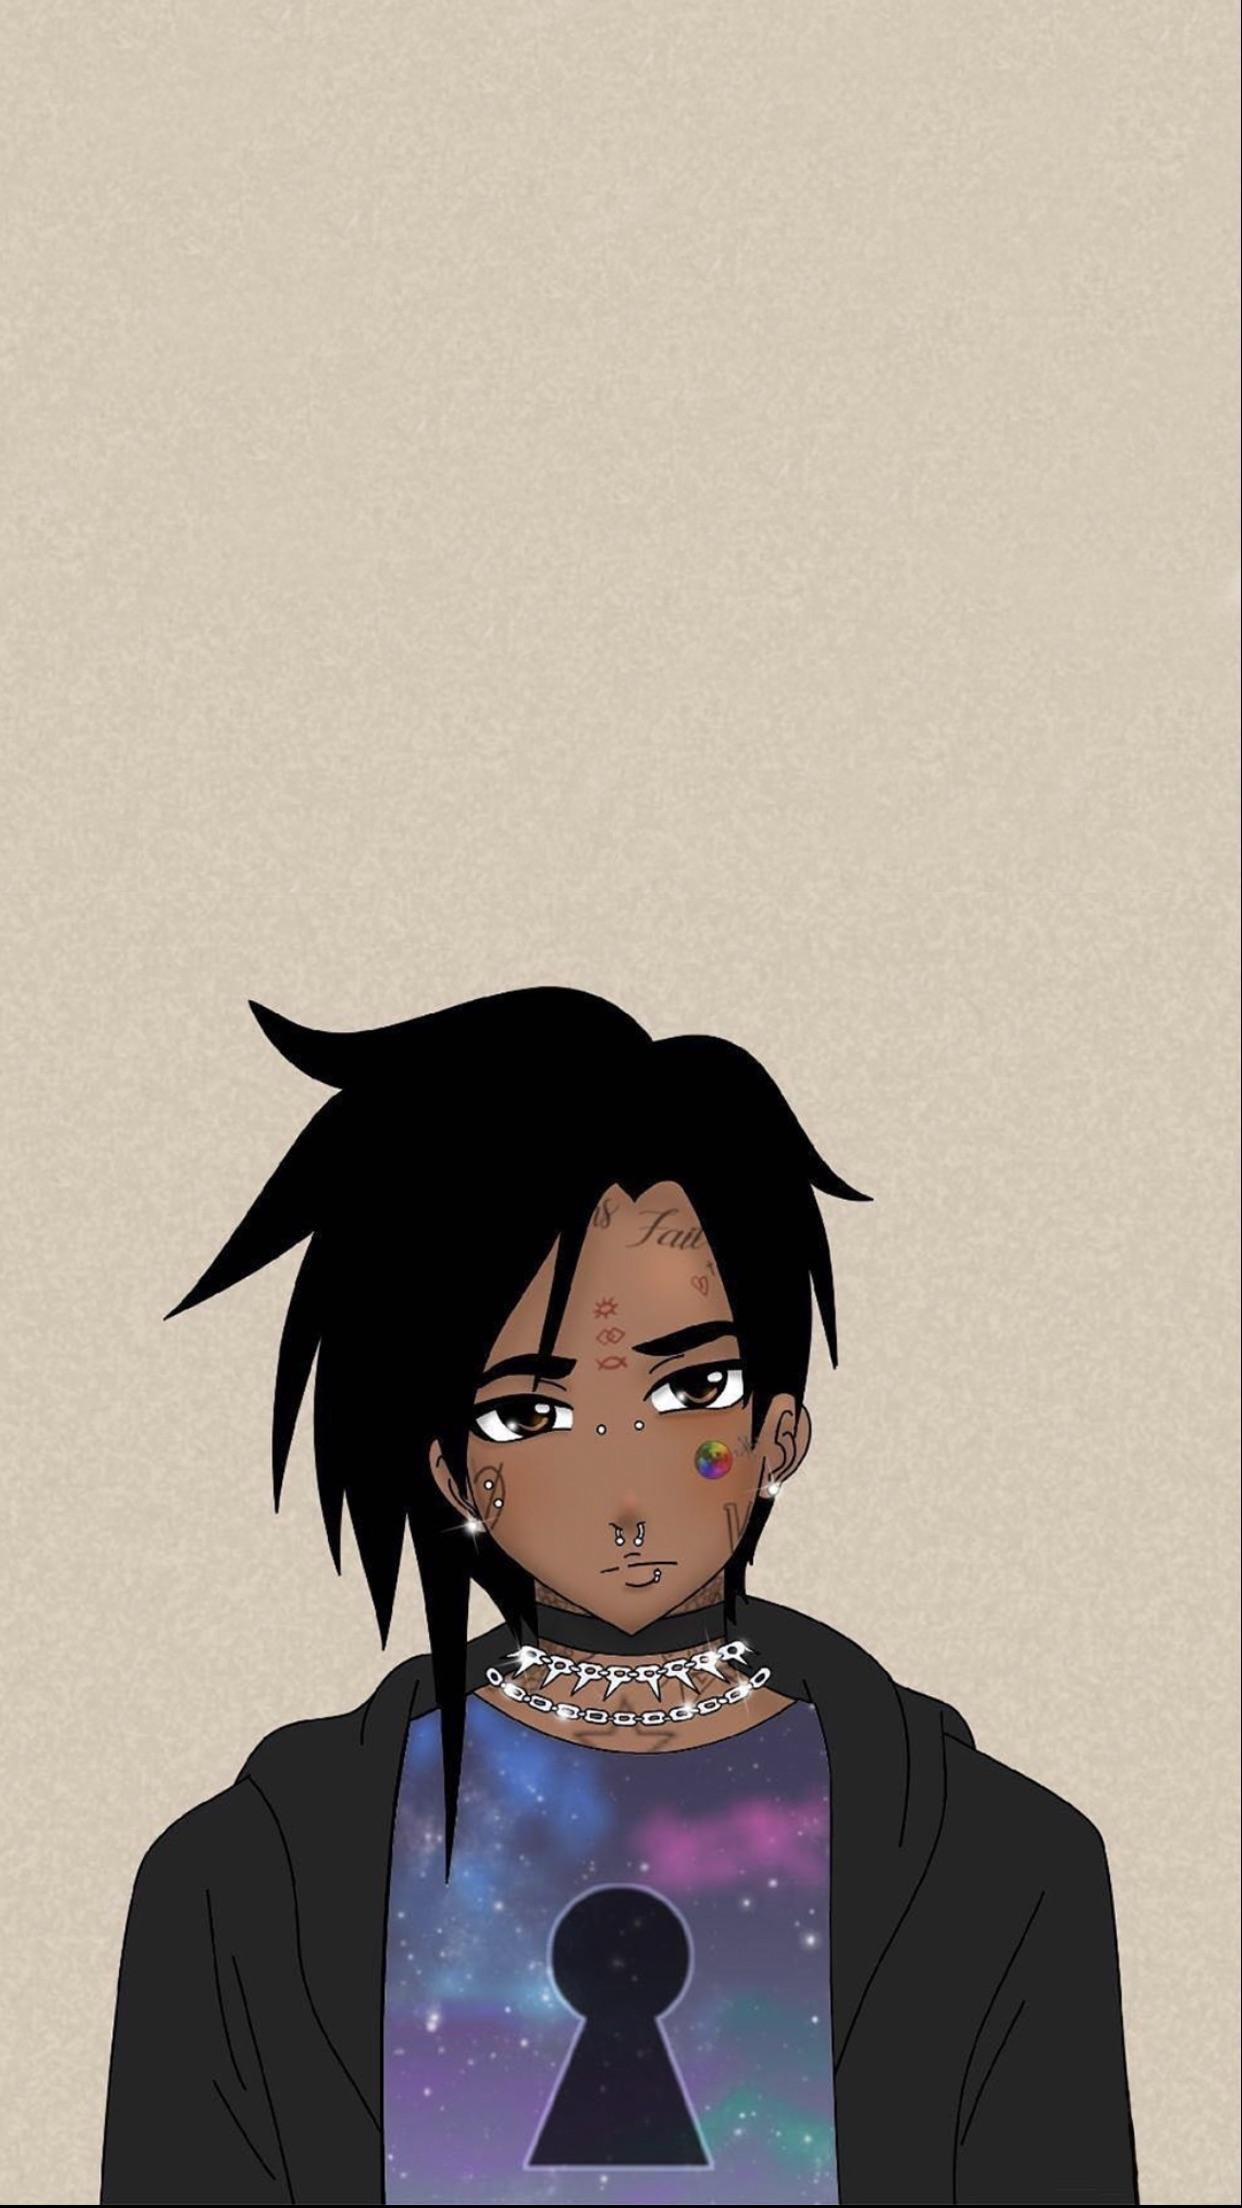 22 Lil Uzi Vert 2019 Wallpapers On Wallpapersafari Share a gif and browse these related gif searches. 22 lil uzi vert 2019 wallpapers on